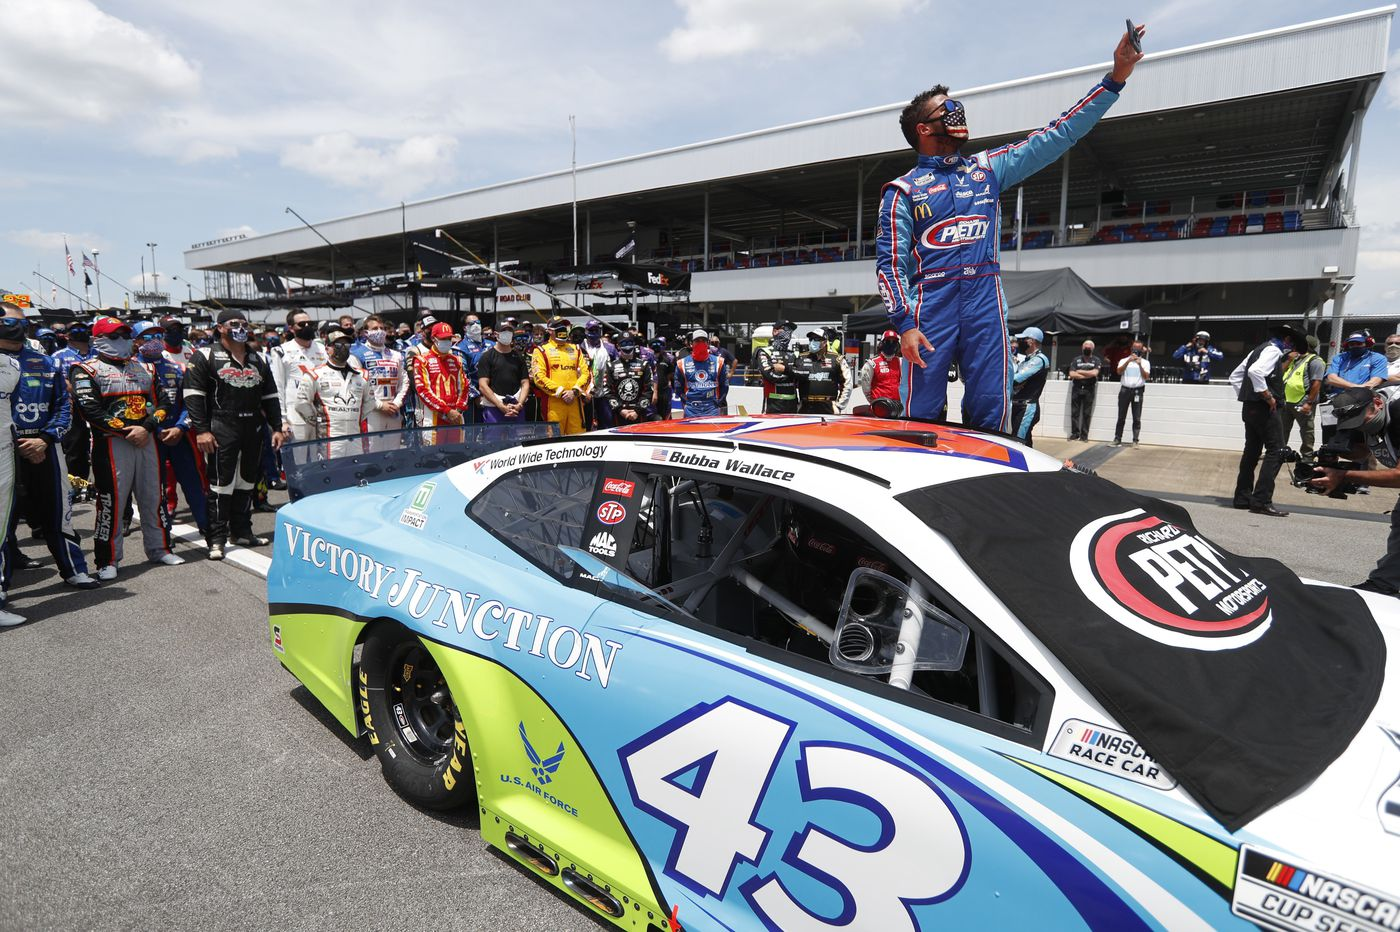 Sports chatter: NASCAR releases image of garage pull rope fashioned like a noose